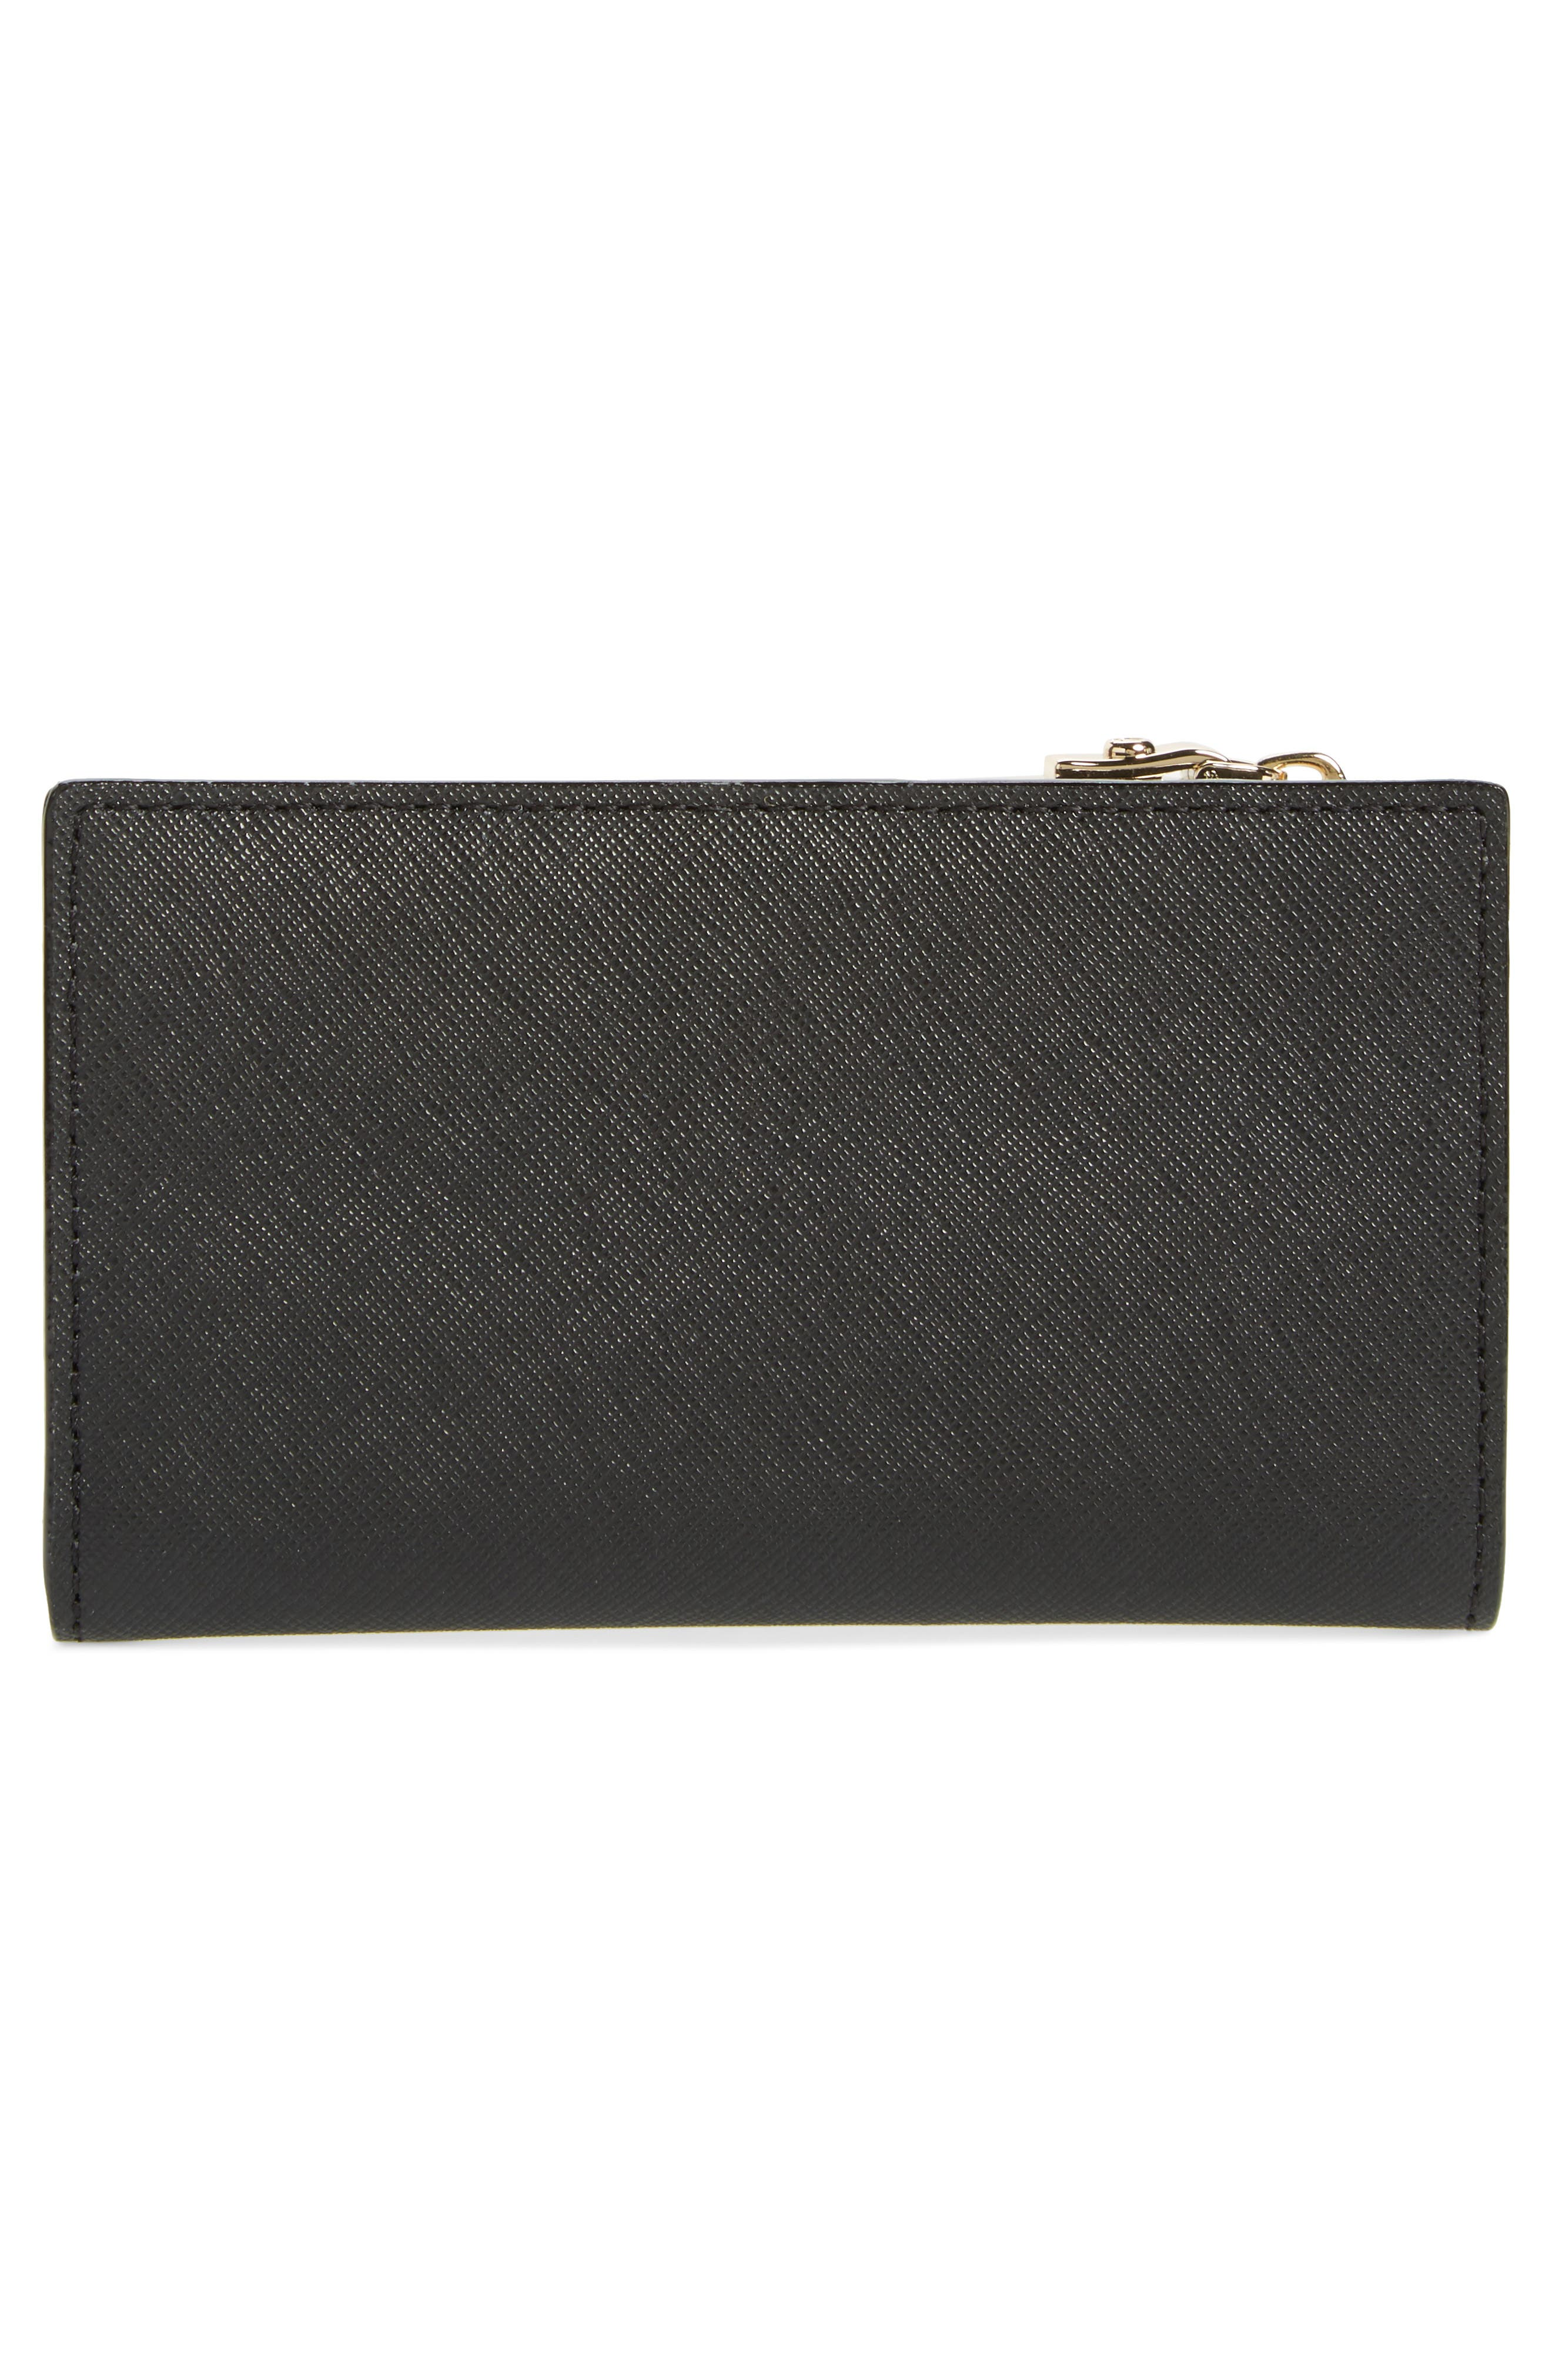 cameron street - mikey leather wallet,                             Alternate thumbnail 4, color,                             Black